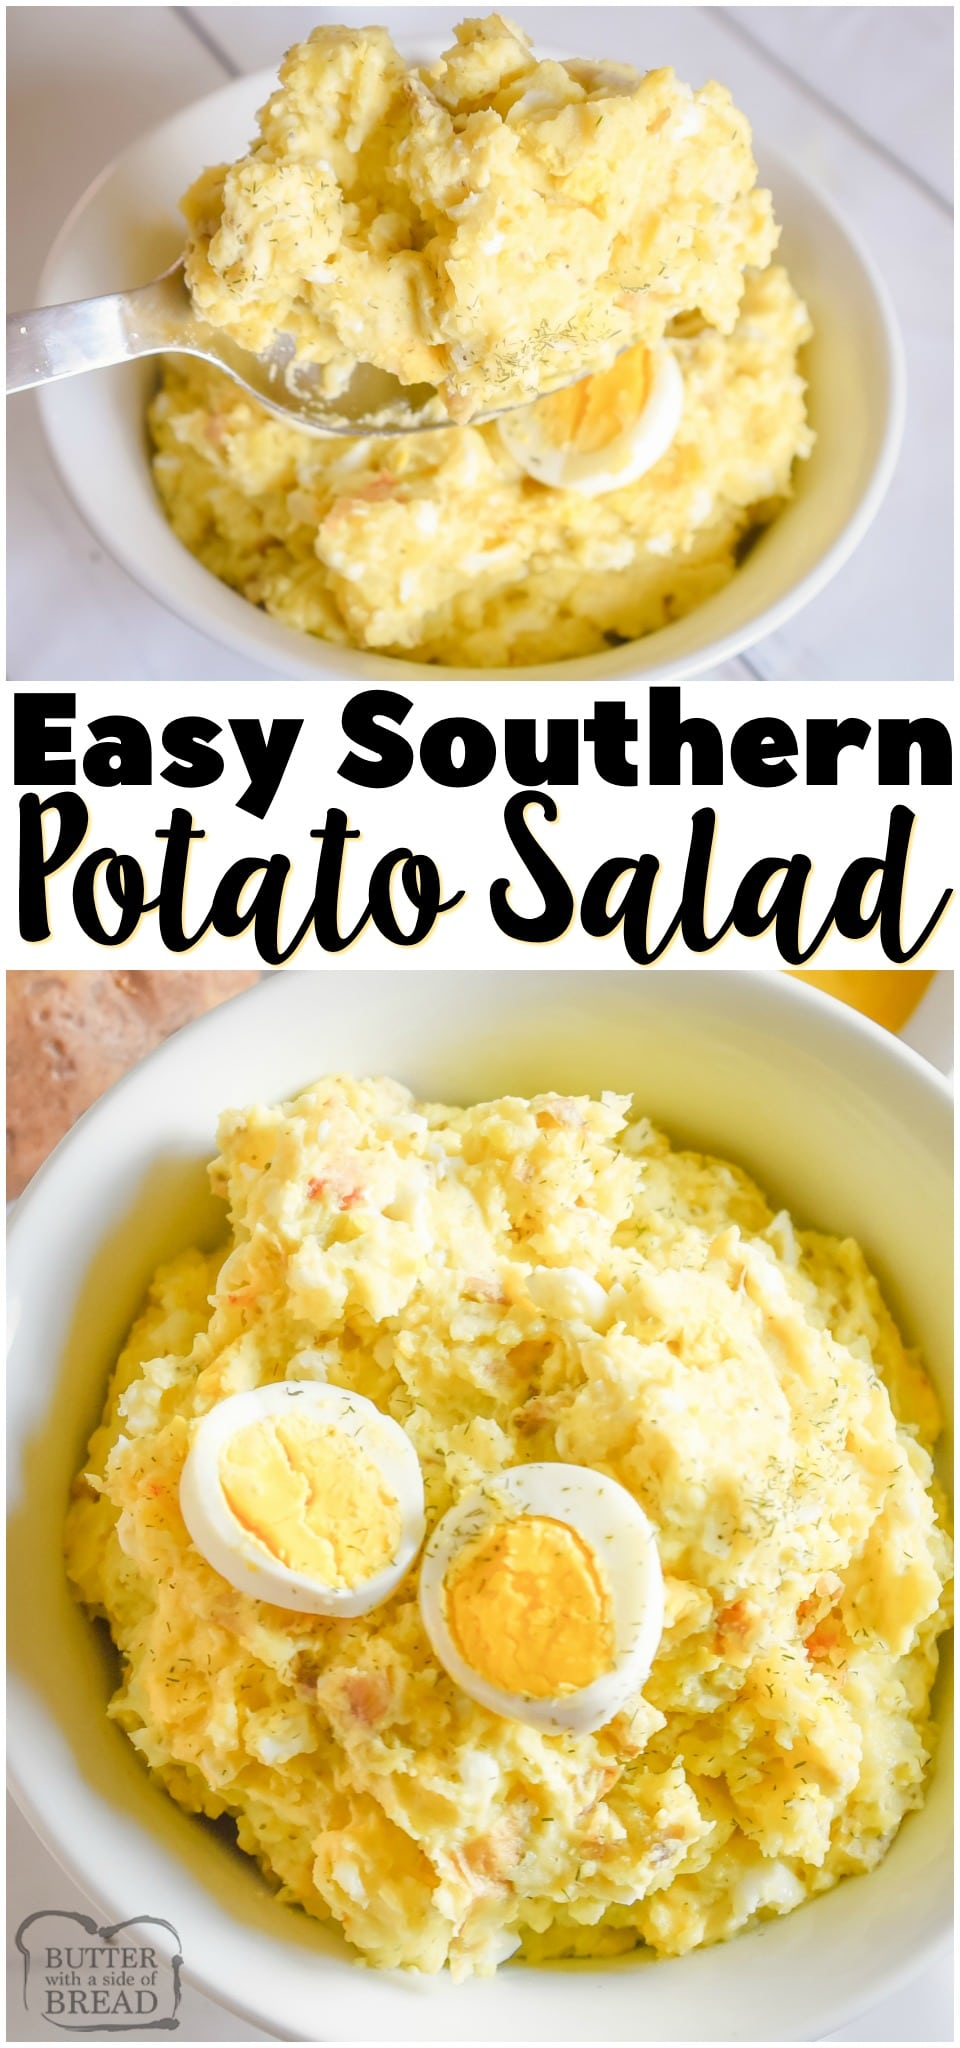 Southern Potato Salad recipe perfect for summer bbq's and get-togethers! Easy potato salad made with Yukon gold potatoes, hard boiled eggs and a simple tangy dressing.